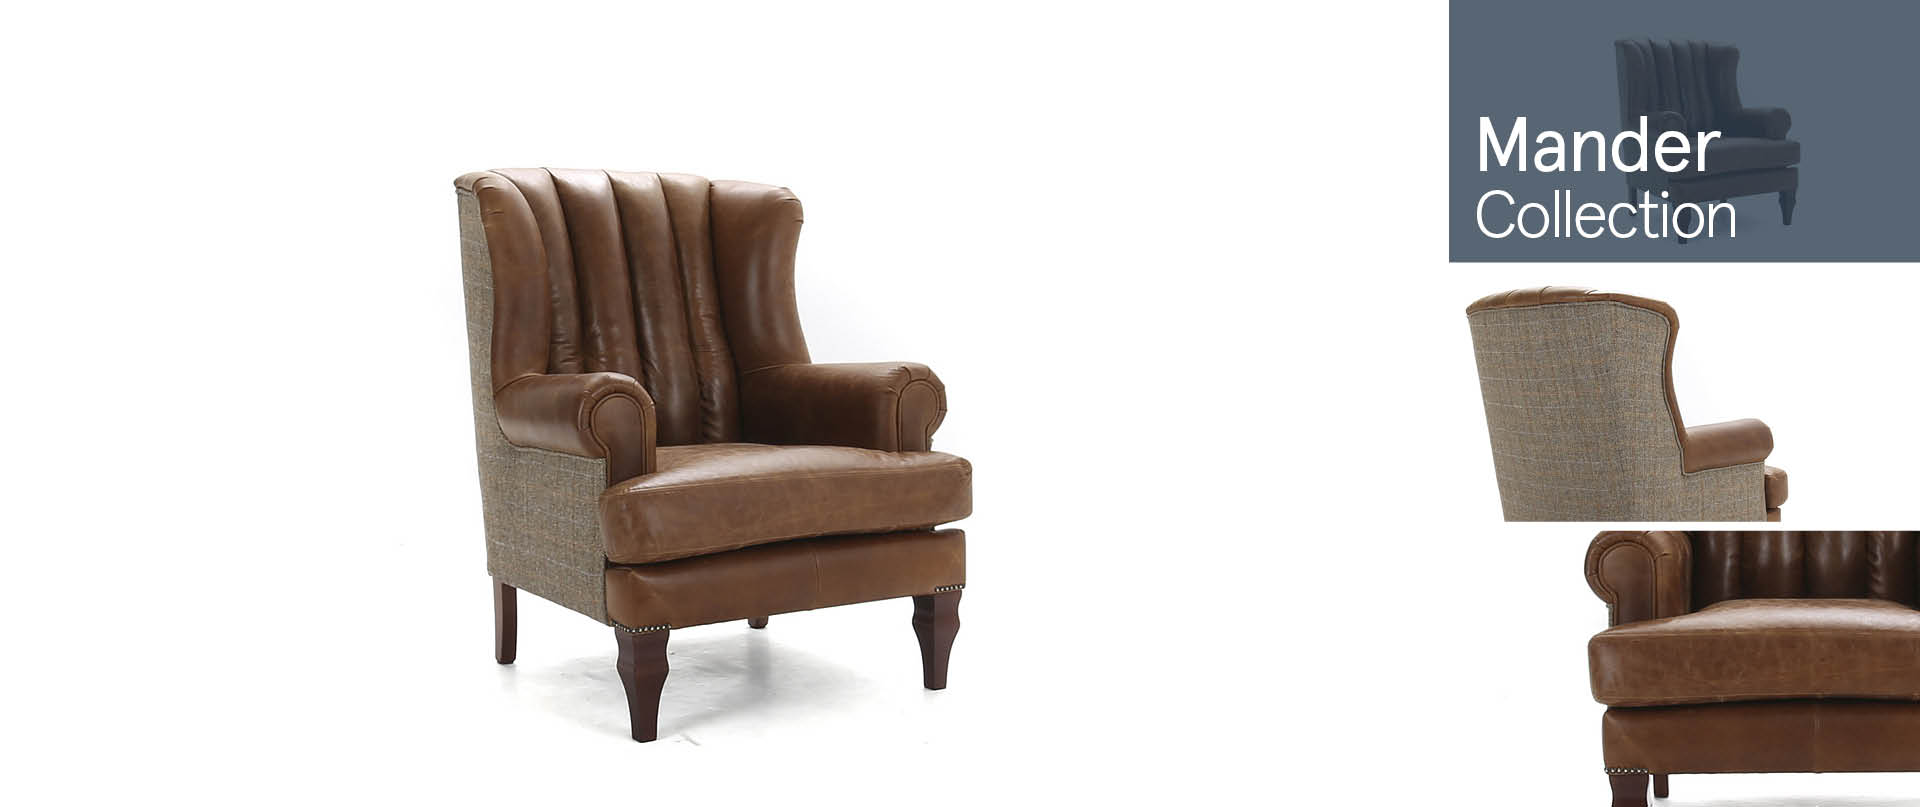 Mander Chairs and Footstools Ranges